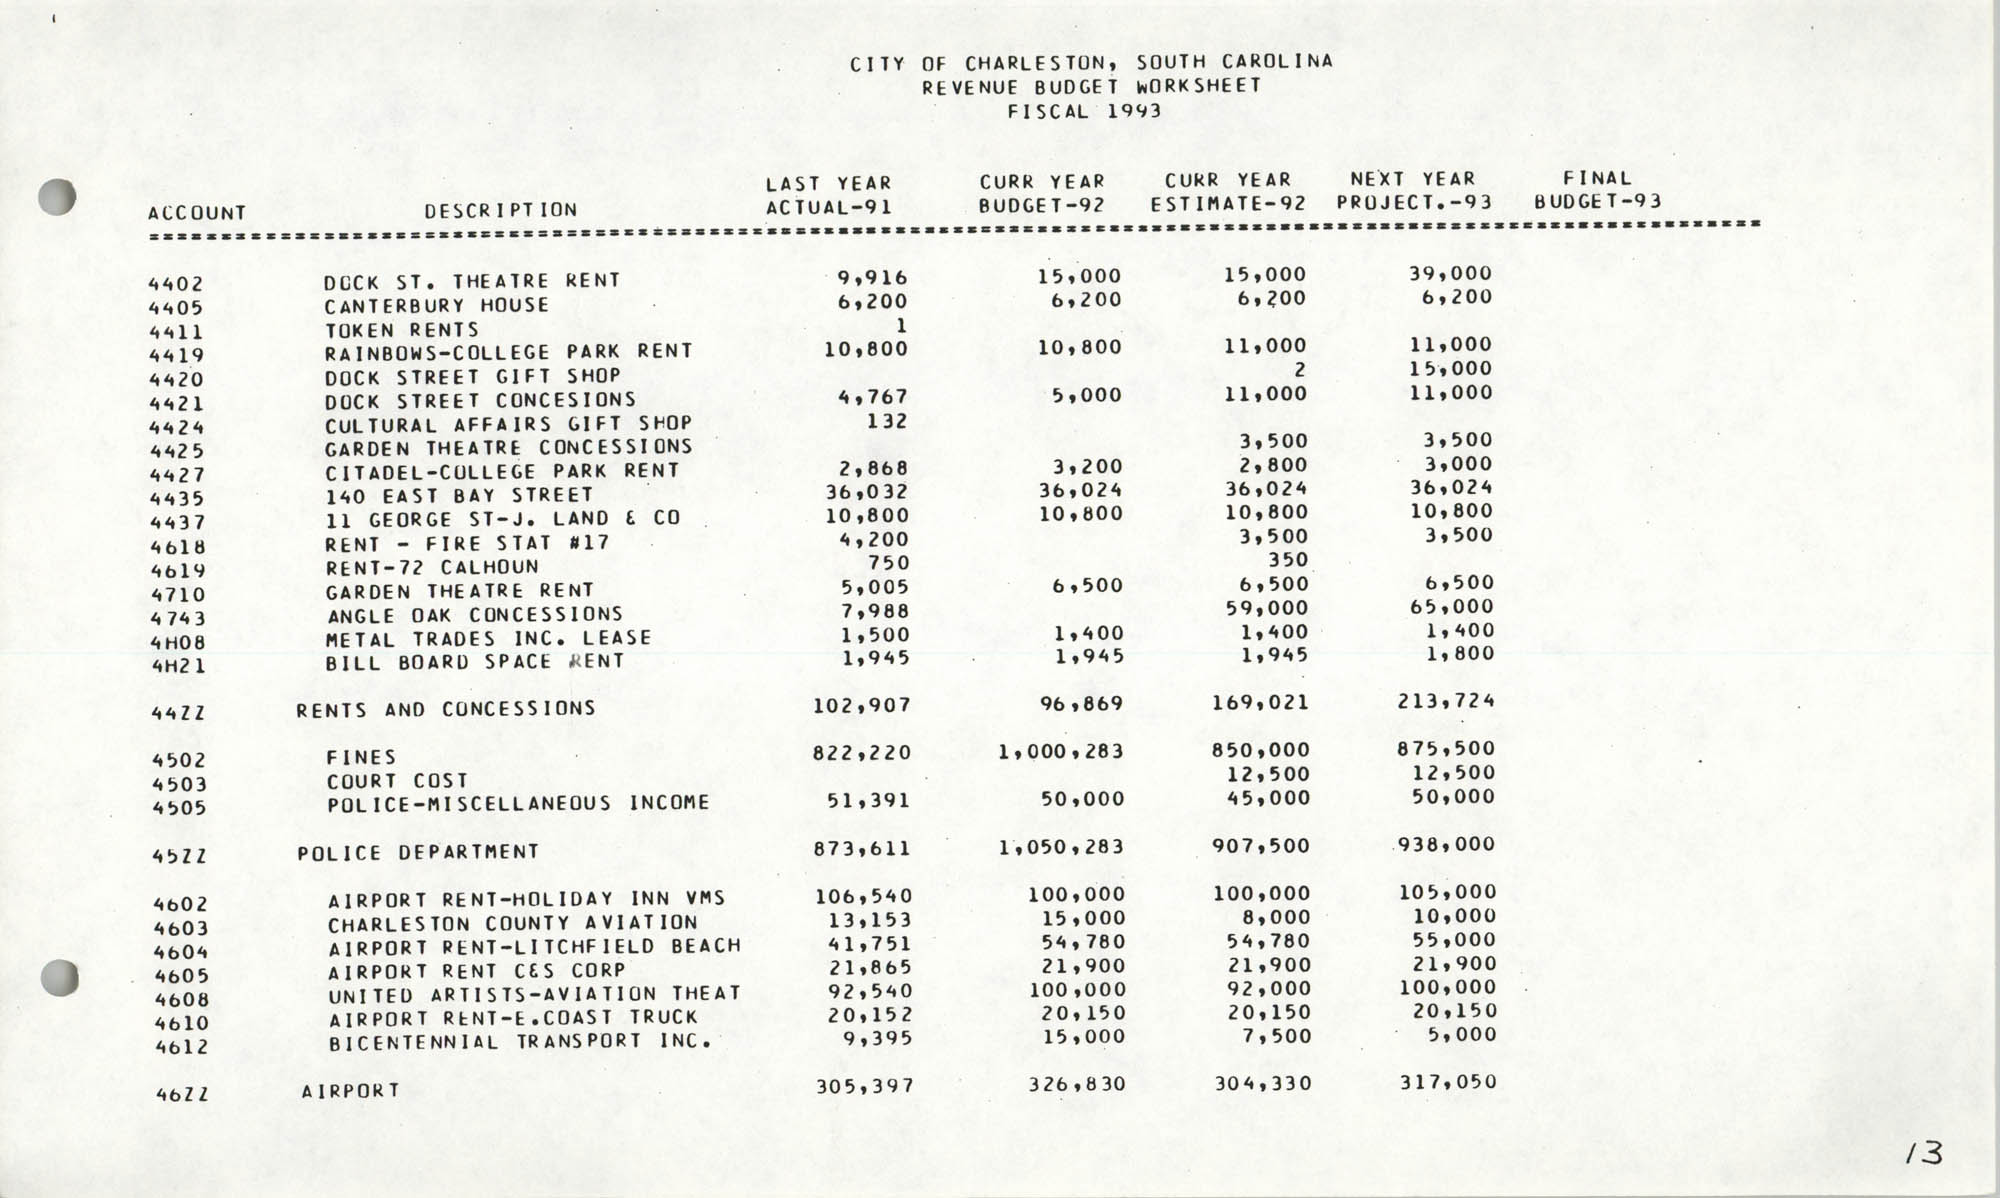 The City Council of Charleston, South Carolina, 1993 Budget, Page 13